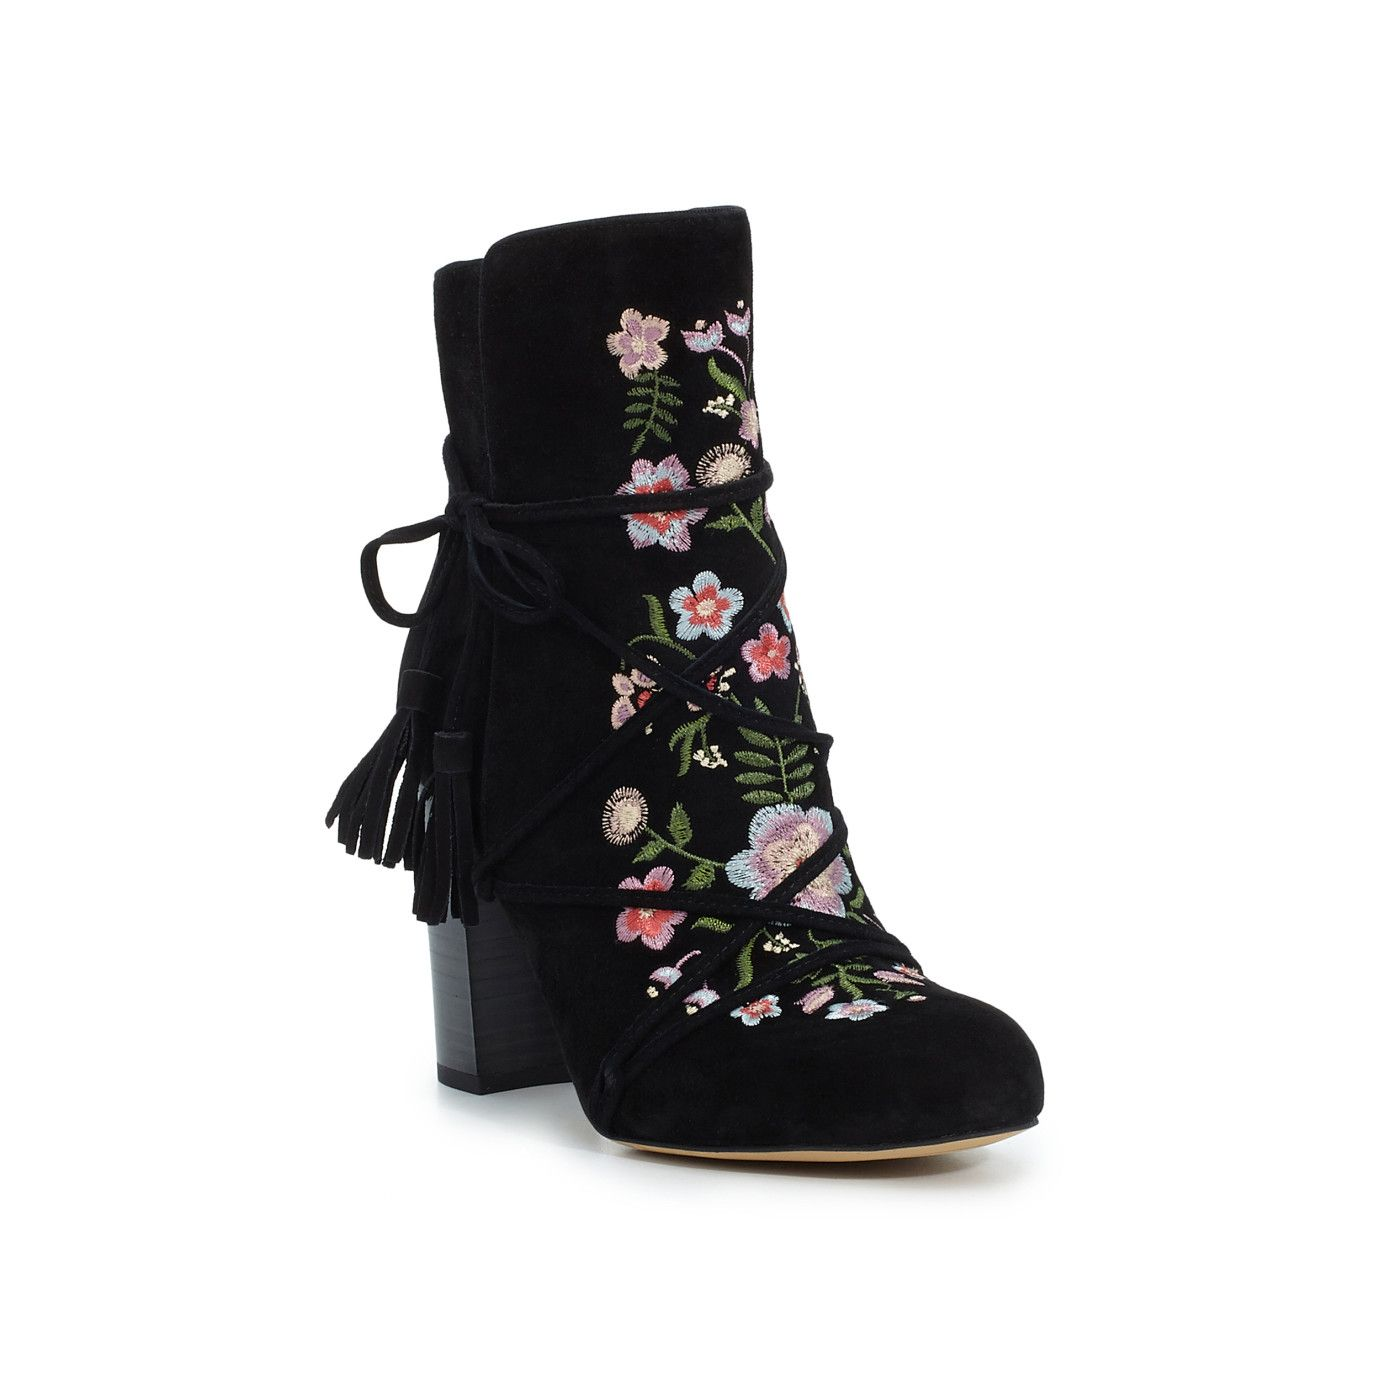 56bb6ca50d4680 Winnie Suede Embroidered Boot by Sam Edelman - Black - View 3